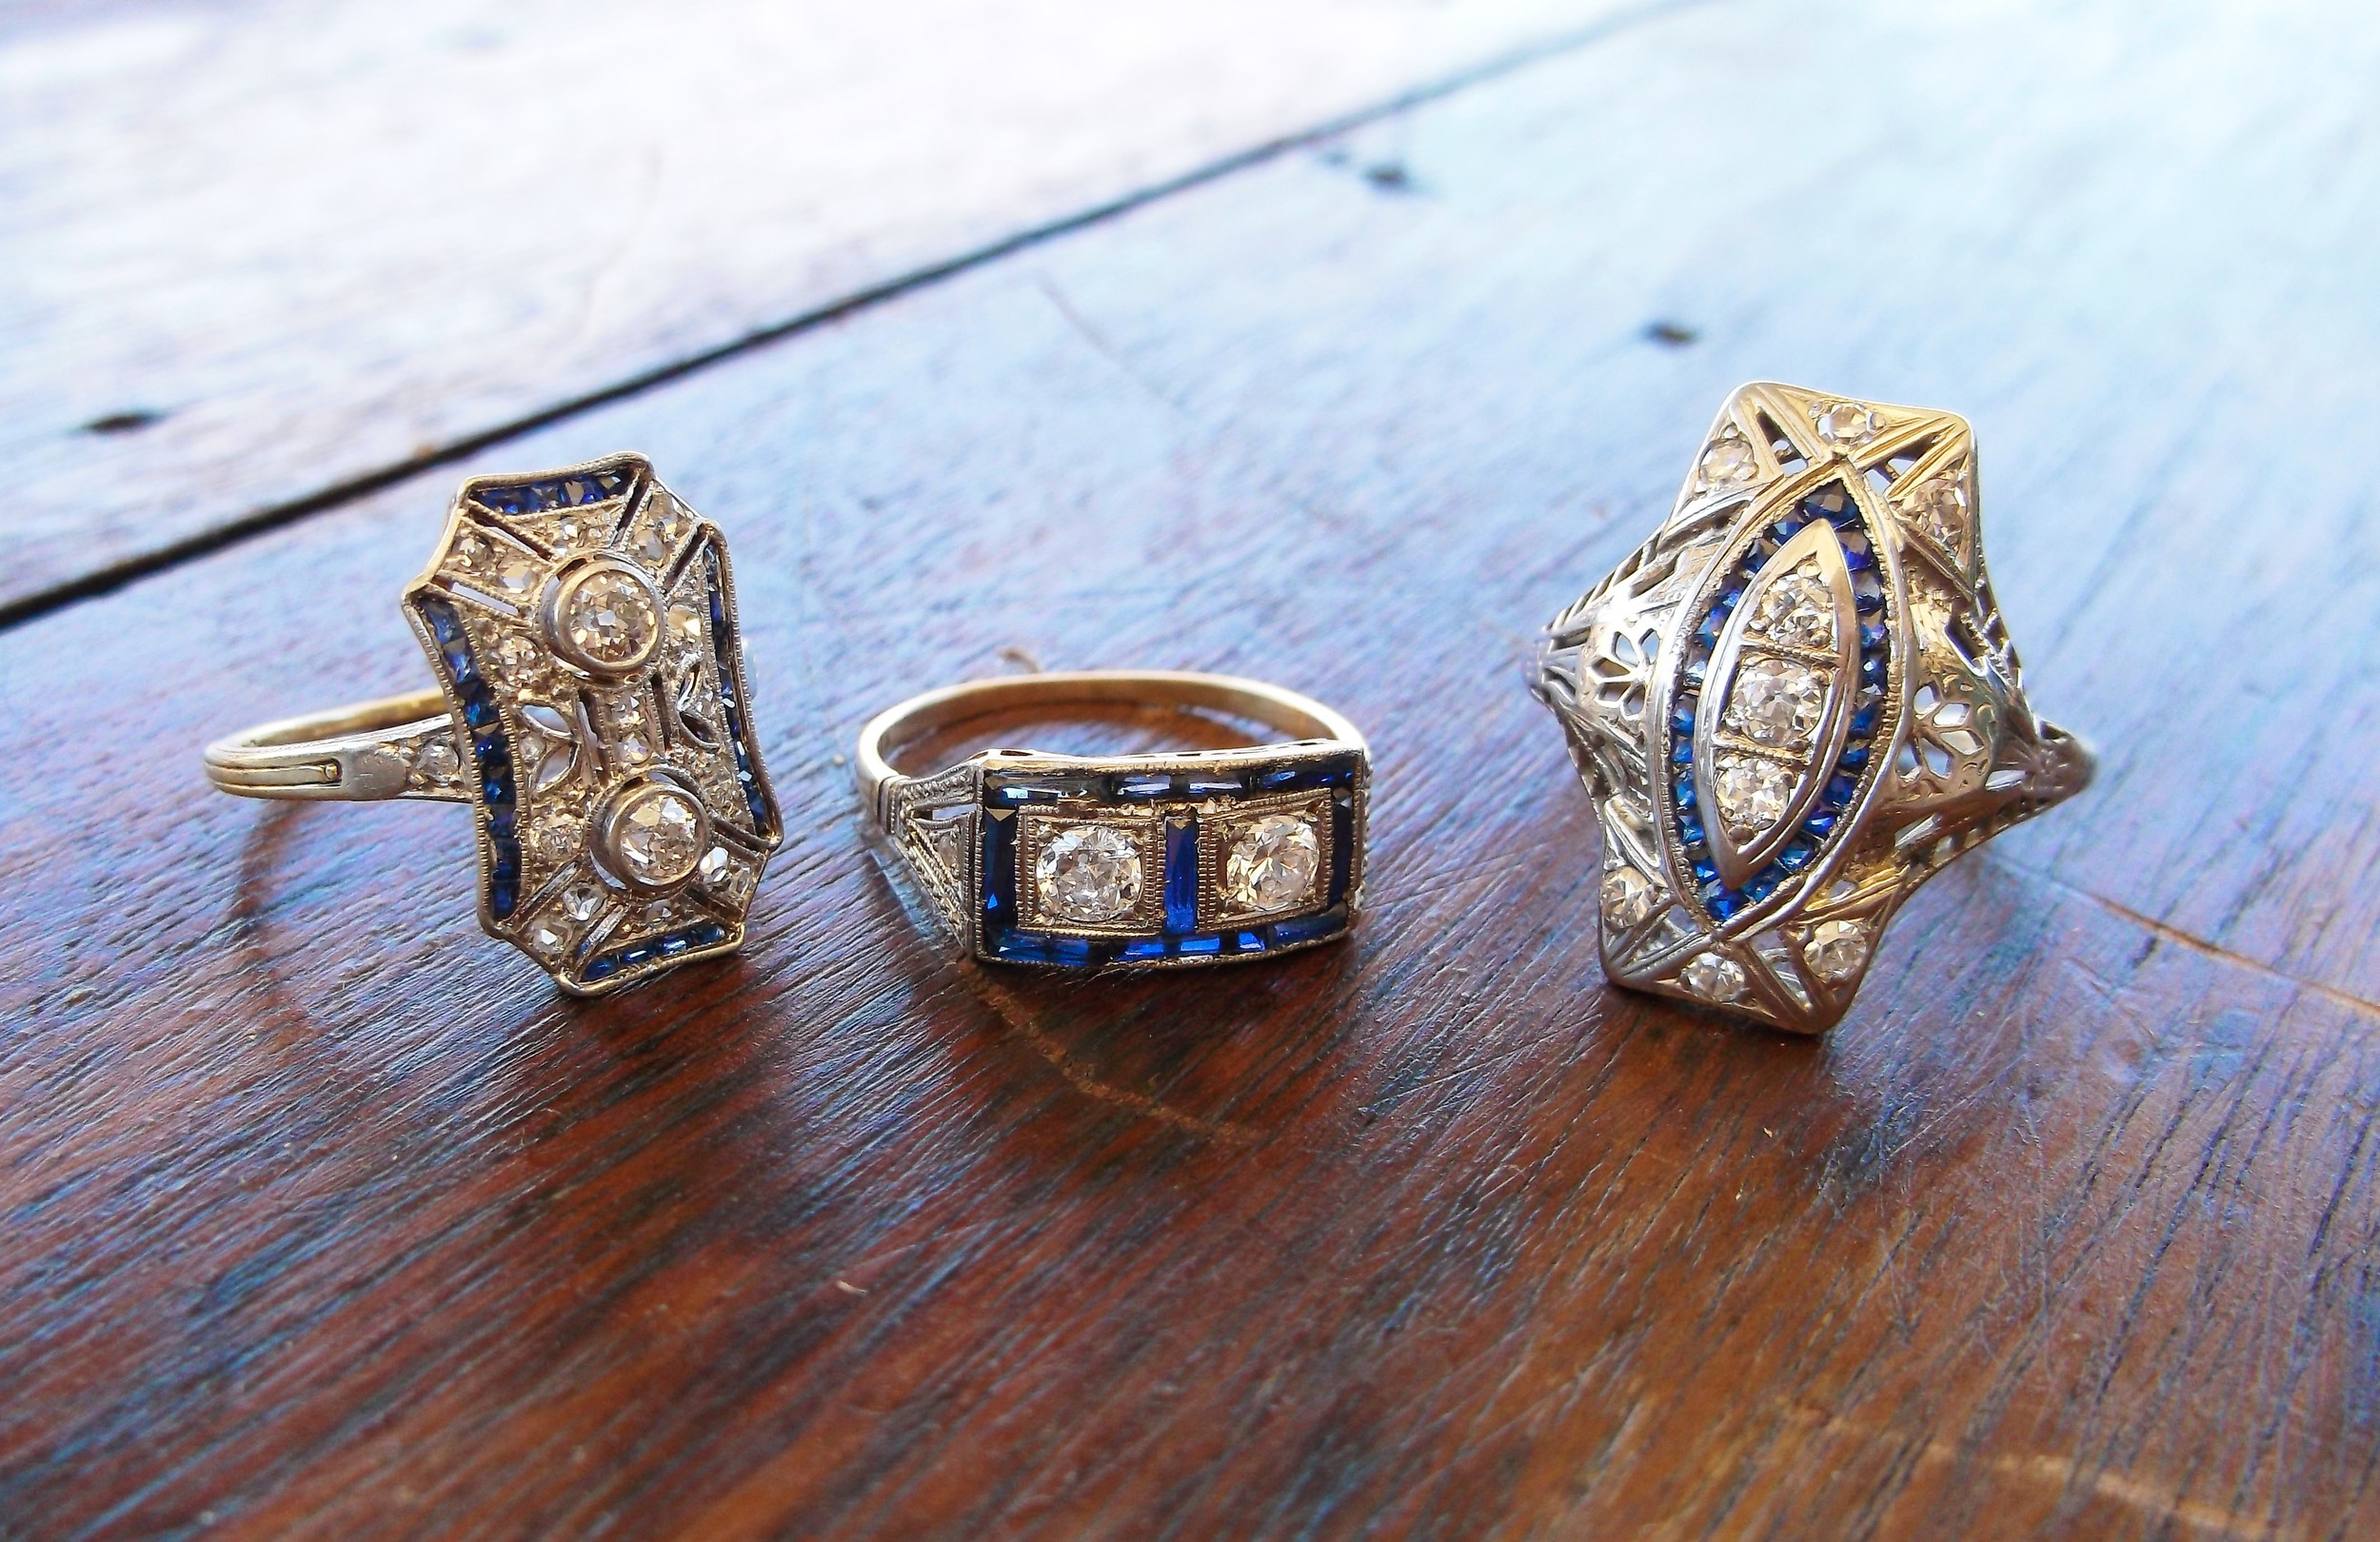 Three lovely Edwardian and Art Deco diamond rings with beautiful sapphire details. From left to right: *SOLD - Edwardian era, platinum topped gold, diamond and sapphire ring with 0.40 carats total weight in diamonds with 0.45 carats total weight in diamonds. *SOLD - Edwardian era, platinum topped gold, diamond and sapphire ring with two 0.15 carat Old European cut diamonds in the center. *SOLD - Art Deco, platinum and white gold, diamond and sapphire ring with 0.40 carats total weight in diam...onds.